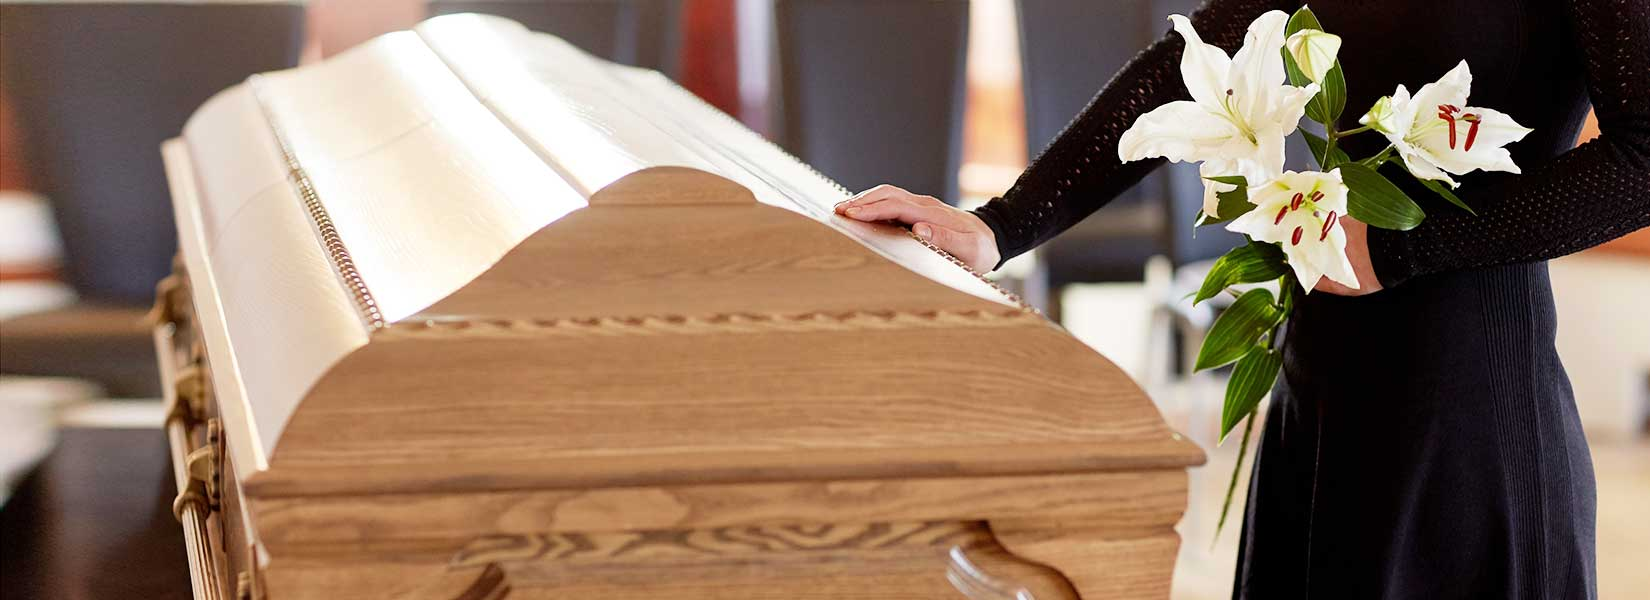 What are Some Things That Can Jeopardize Your Wrongful Death Case?